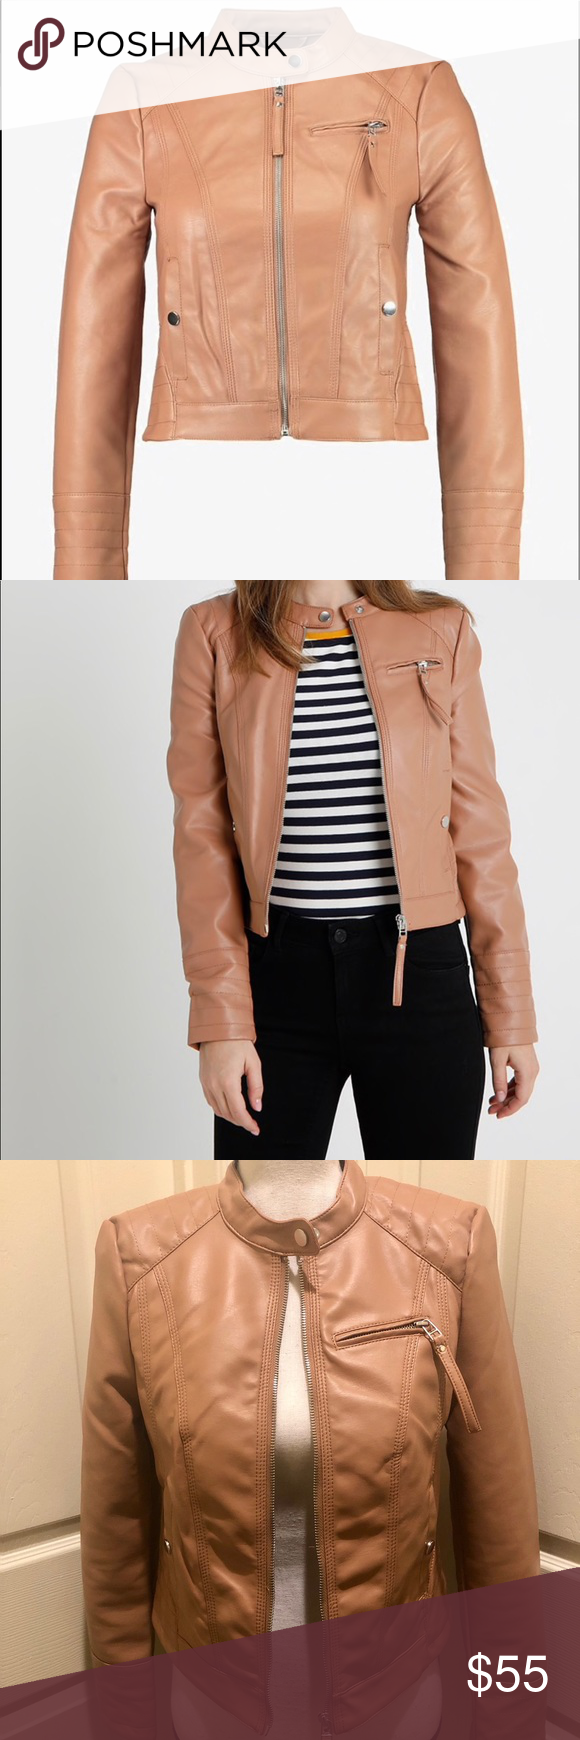 Hp Faux Leather Jacket Faux Leather Jackets Clothes Design Burgundy Leather Jacket